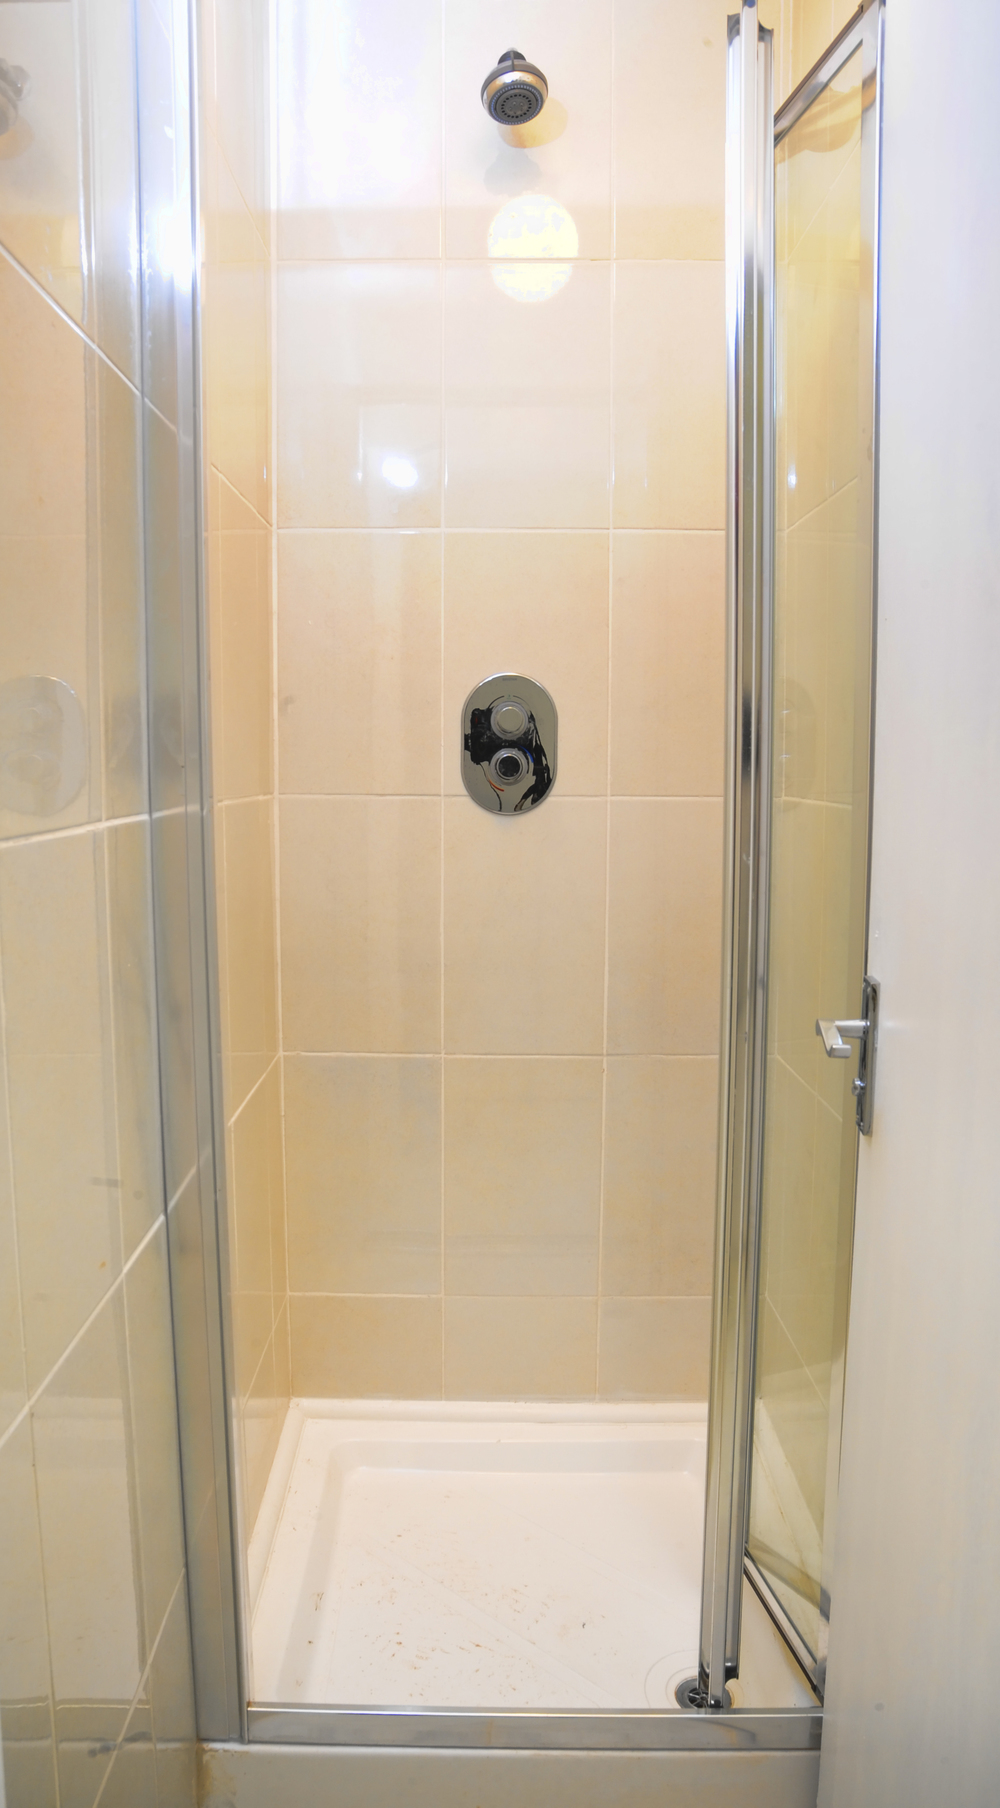 hostel-shower-room.jpg